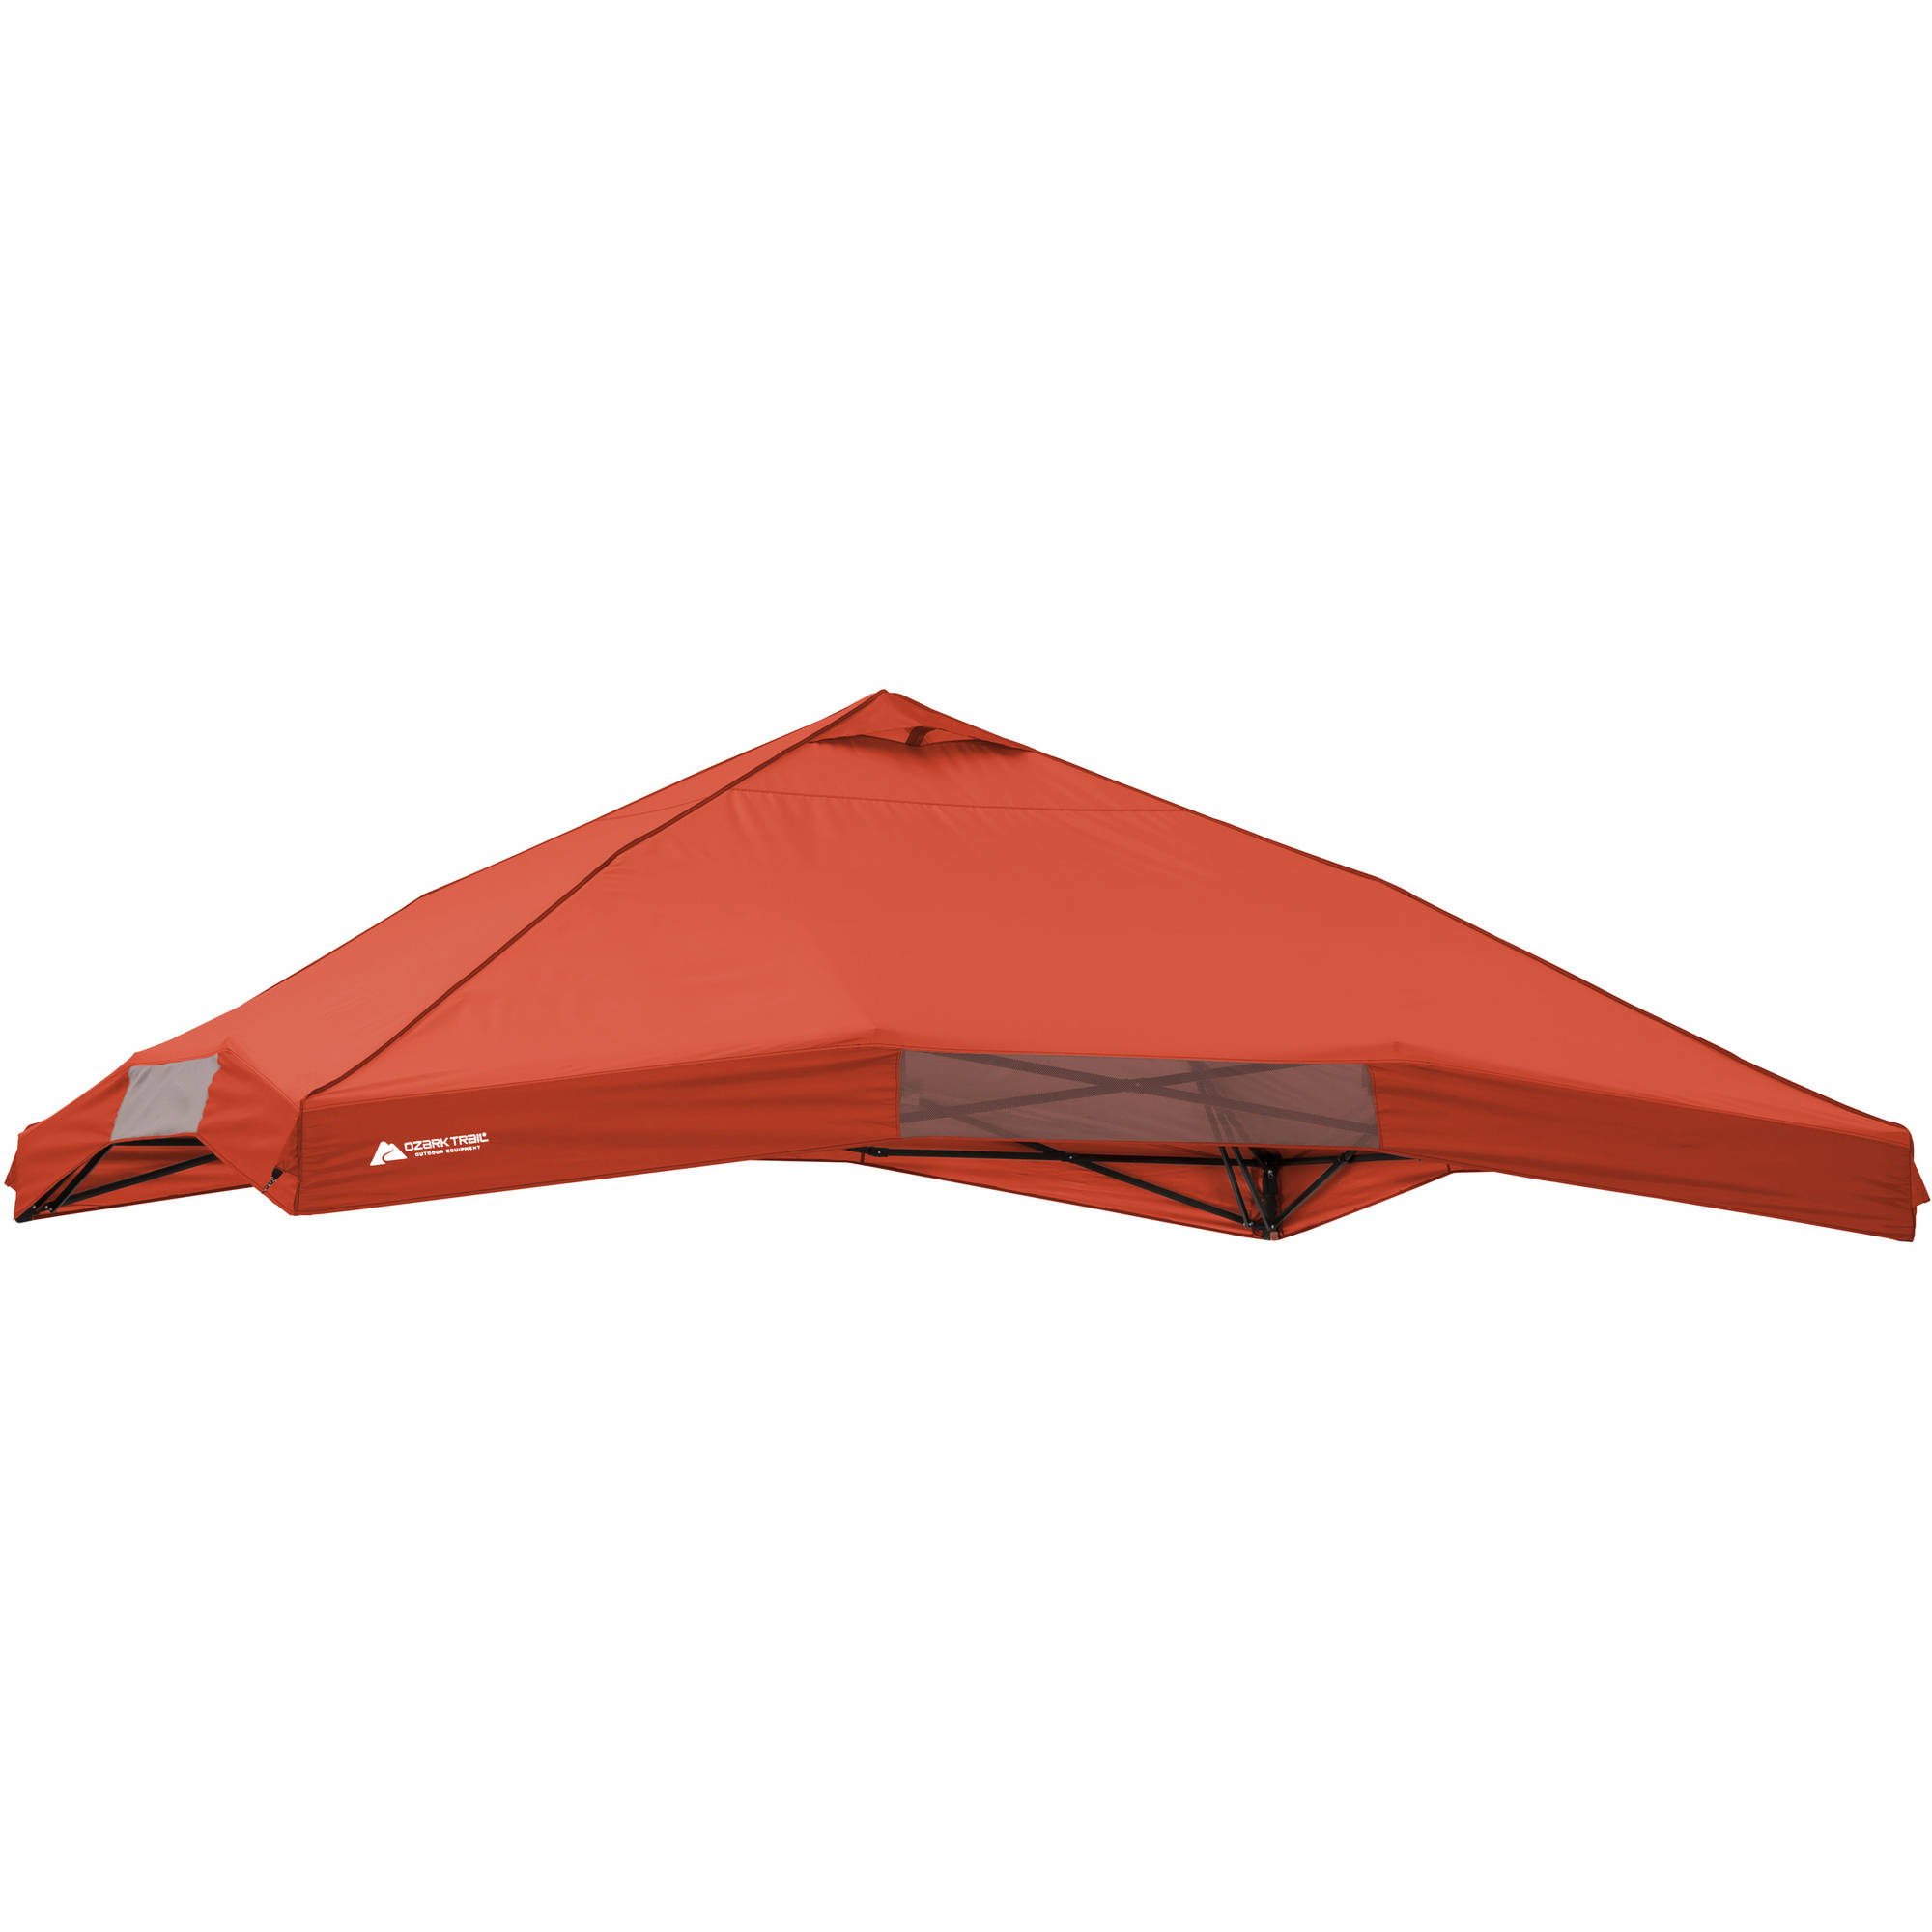 Cheap Ozark Trail Instant 12' x 12' Canopy Top, Red Review